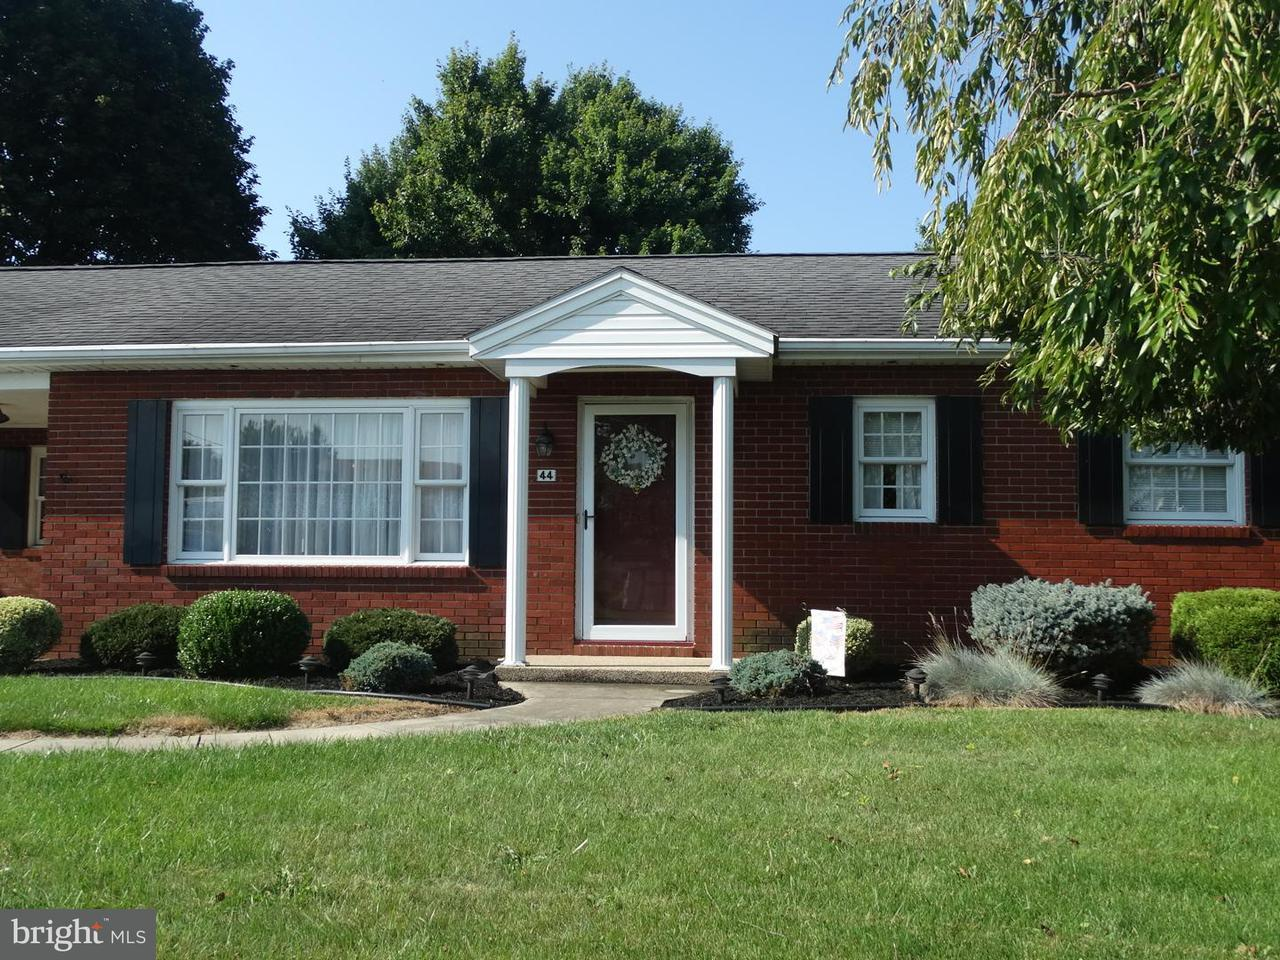 Other Residential for Rent at 44 Edward Dr Greencastle, Pennsylvania 17225 United States